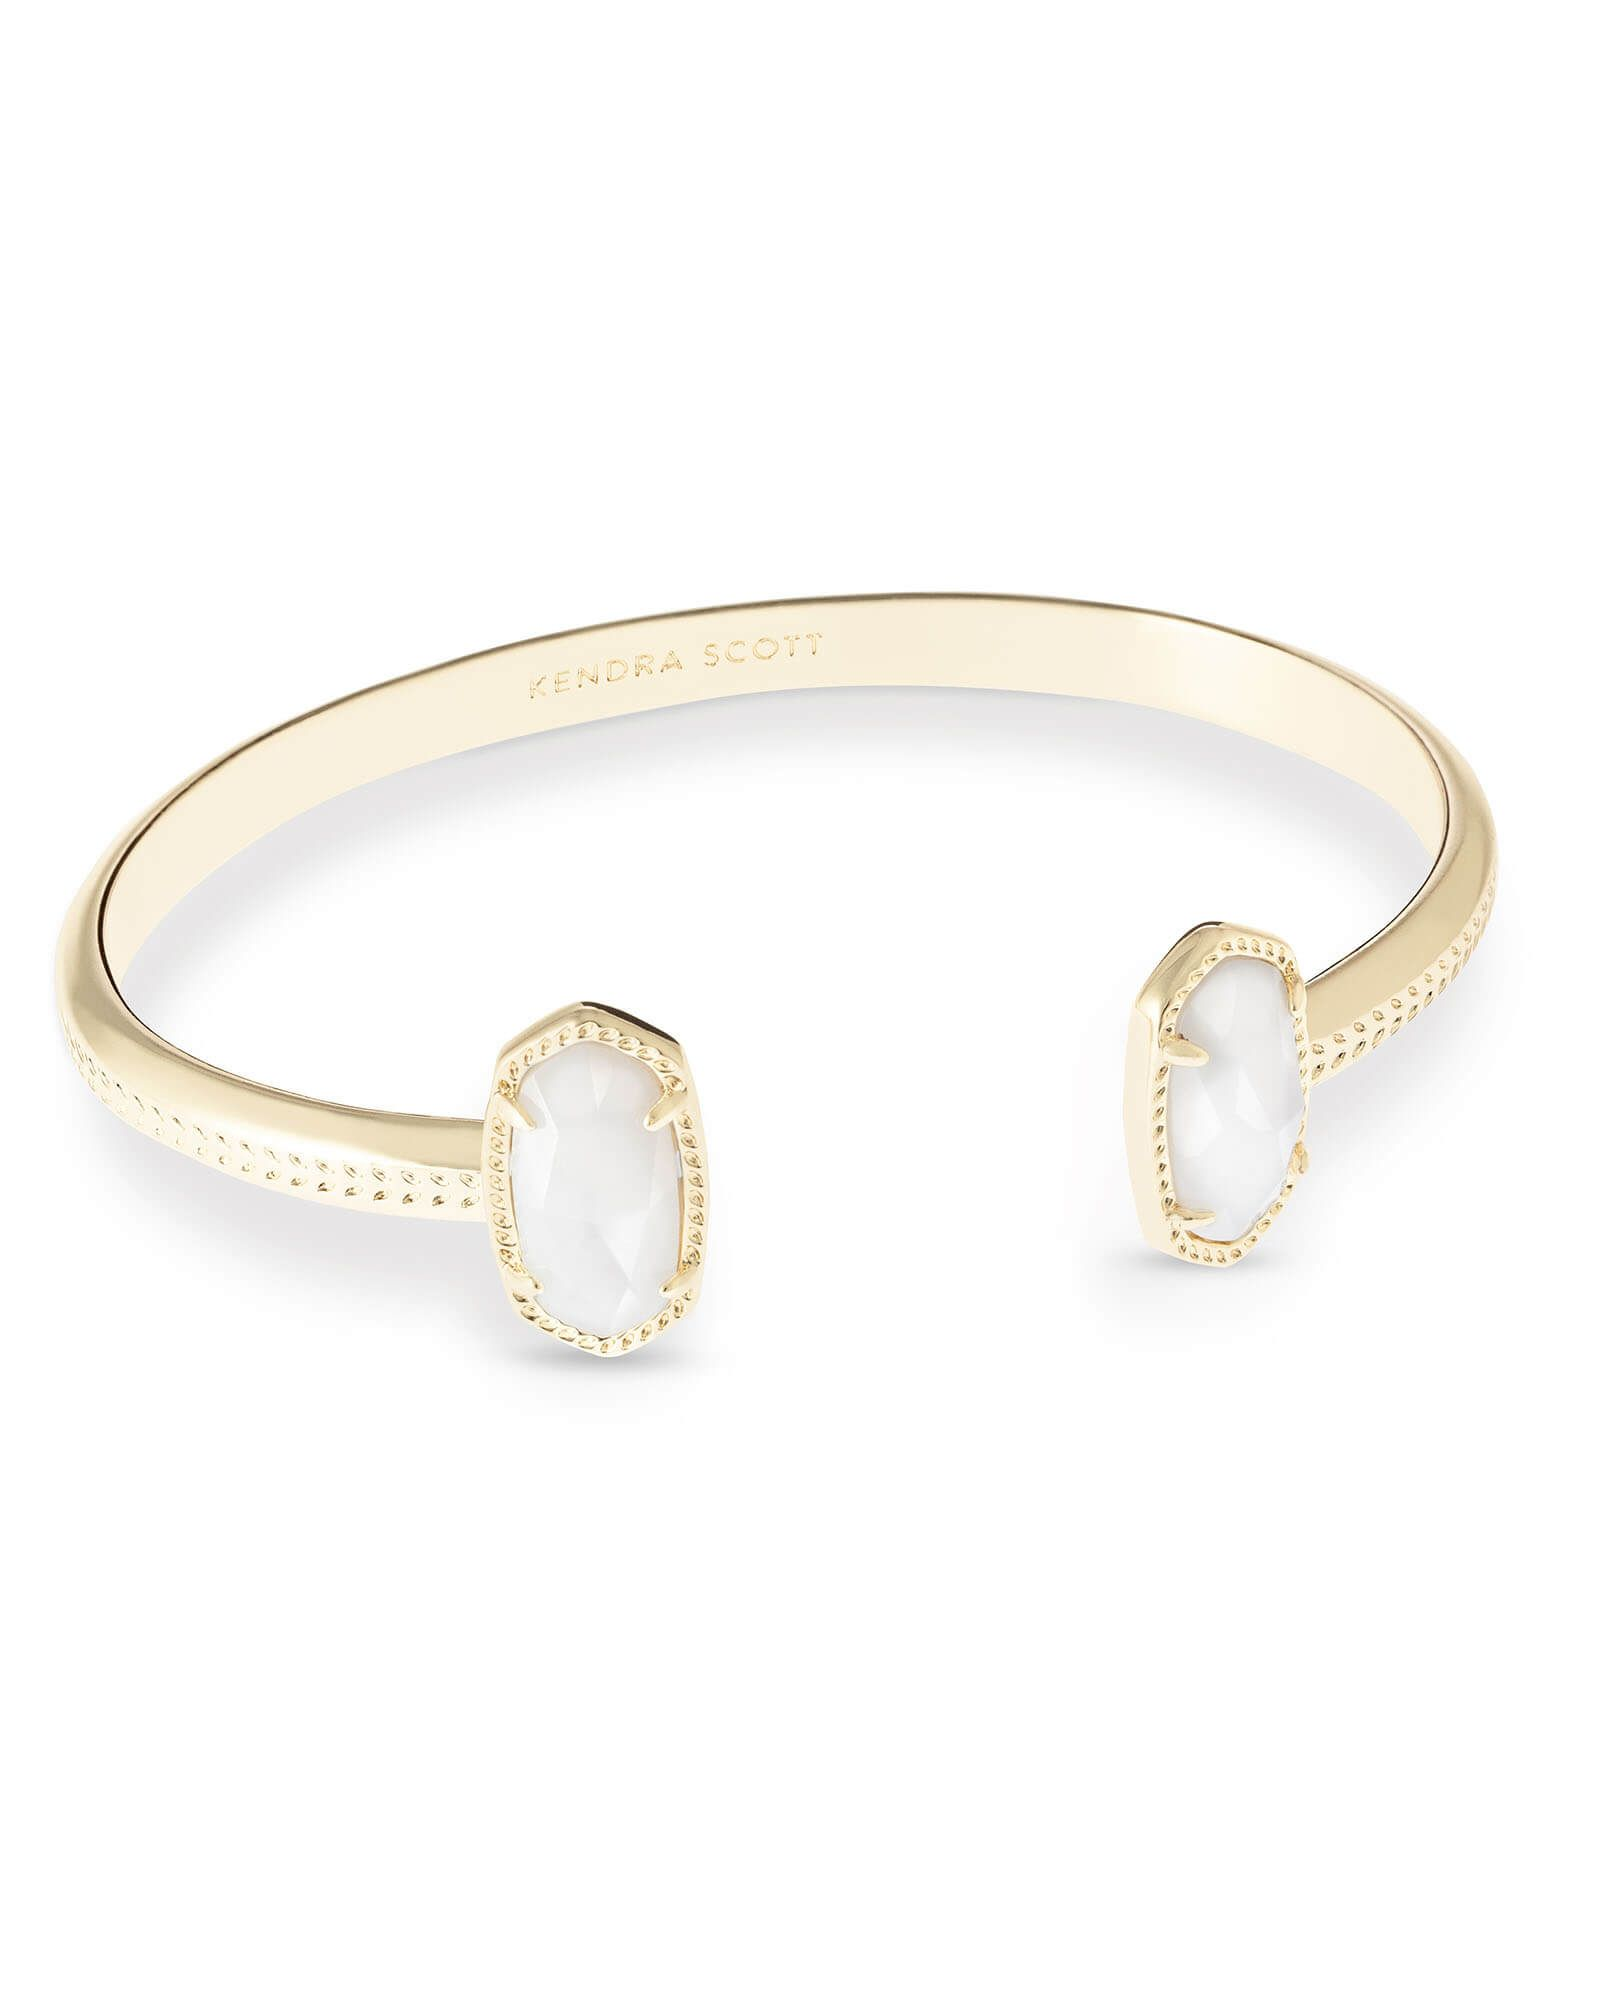 ee6e8db557b Shop the Elton Pinch Bracelet. With bold white pearl ovals to bookend its  elegant curve, this stunning gold pinch bracelet is the perfect addition to  any ...